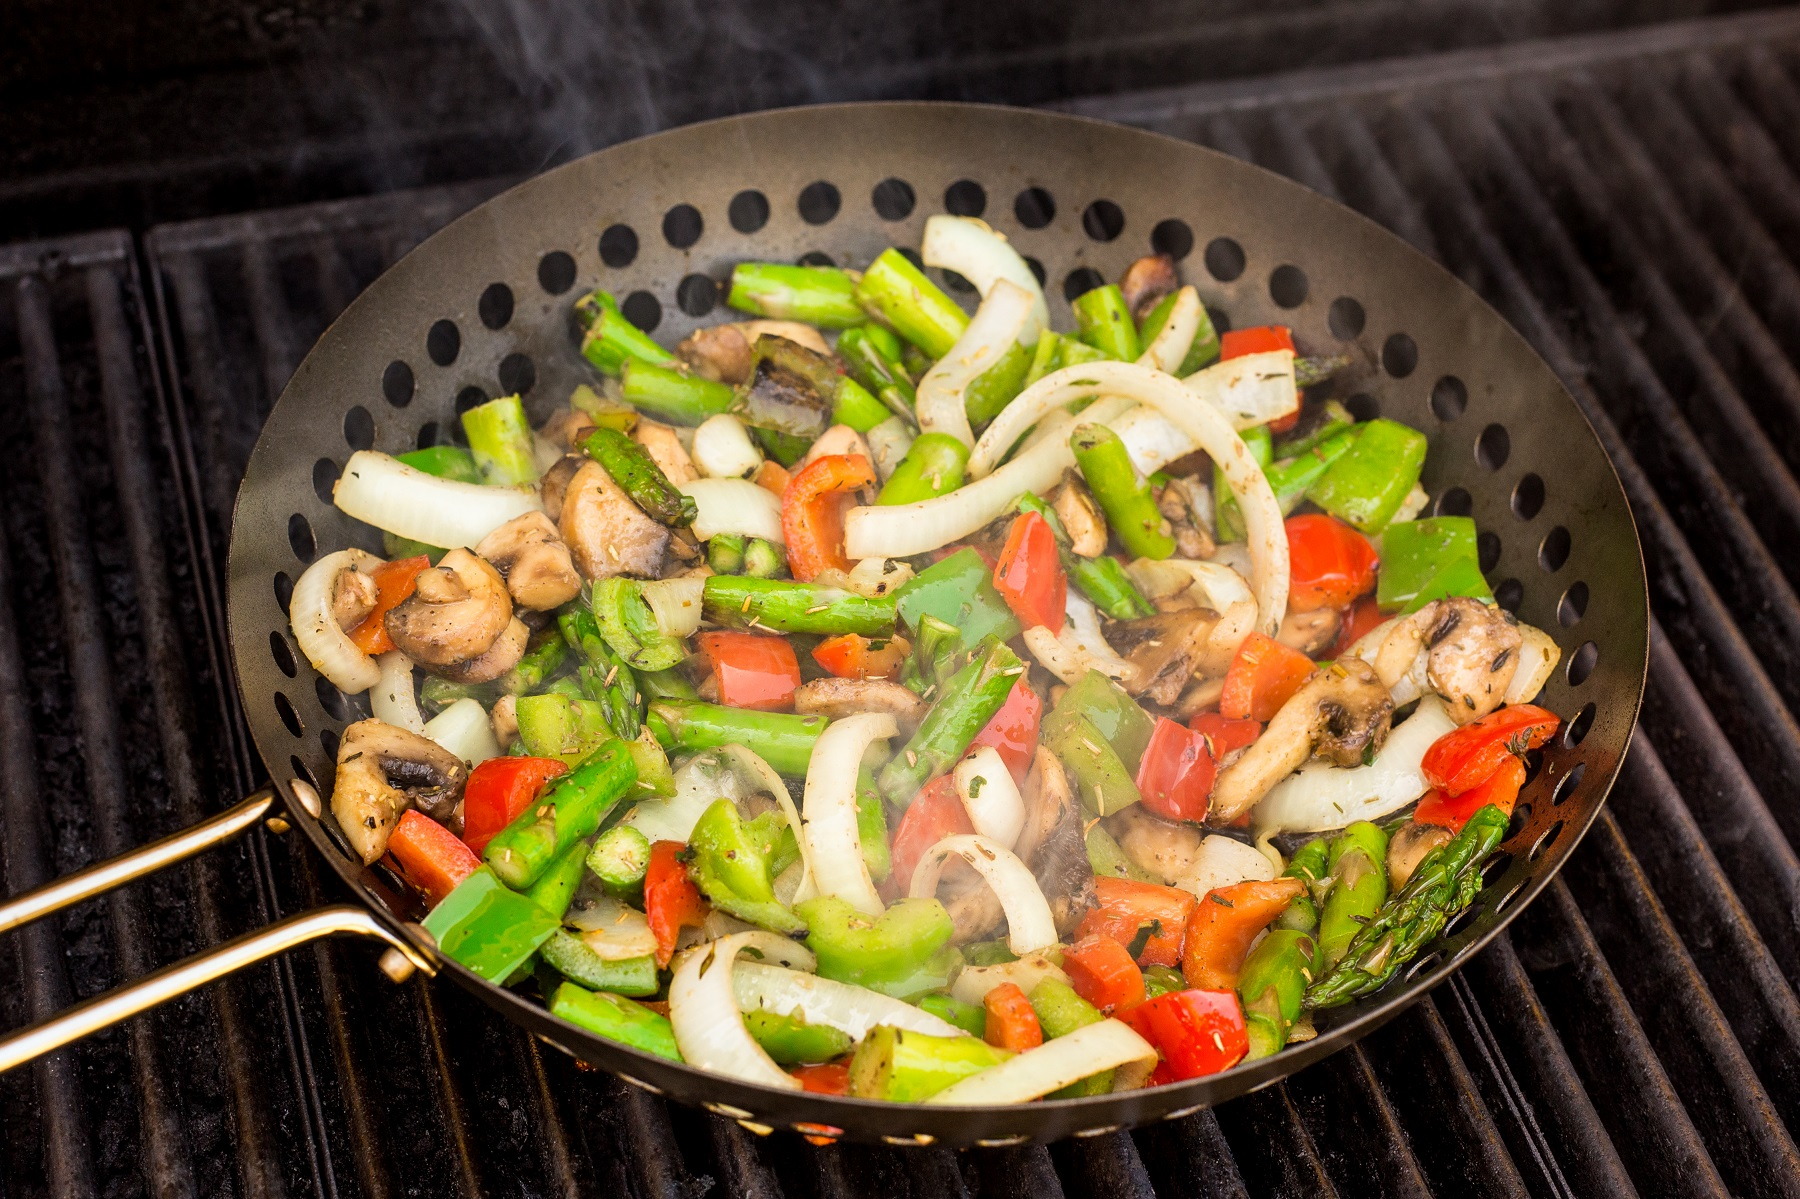 BBQ wok full of diced vegetables on a hot BBQ grill